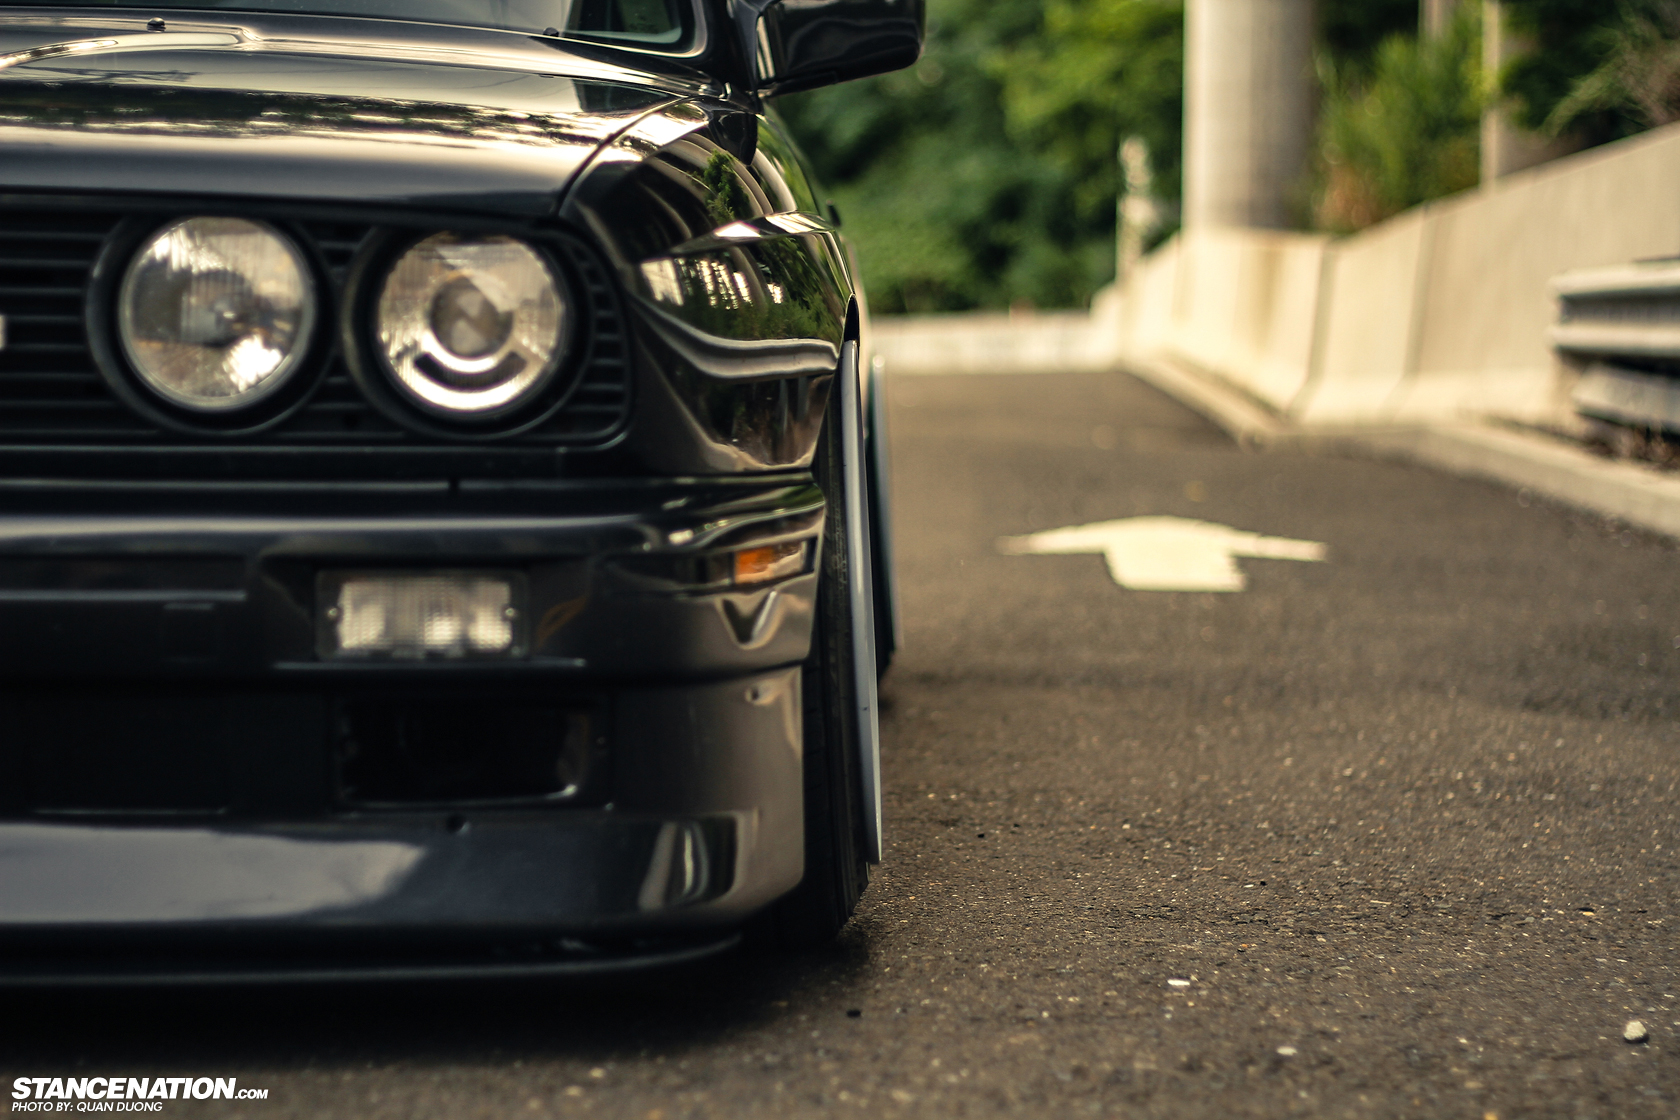 JSutai's Goes Bavarian // Miro's BMW E30. | StanceNation™ // Form > Function